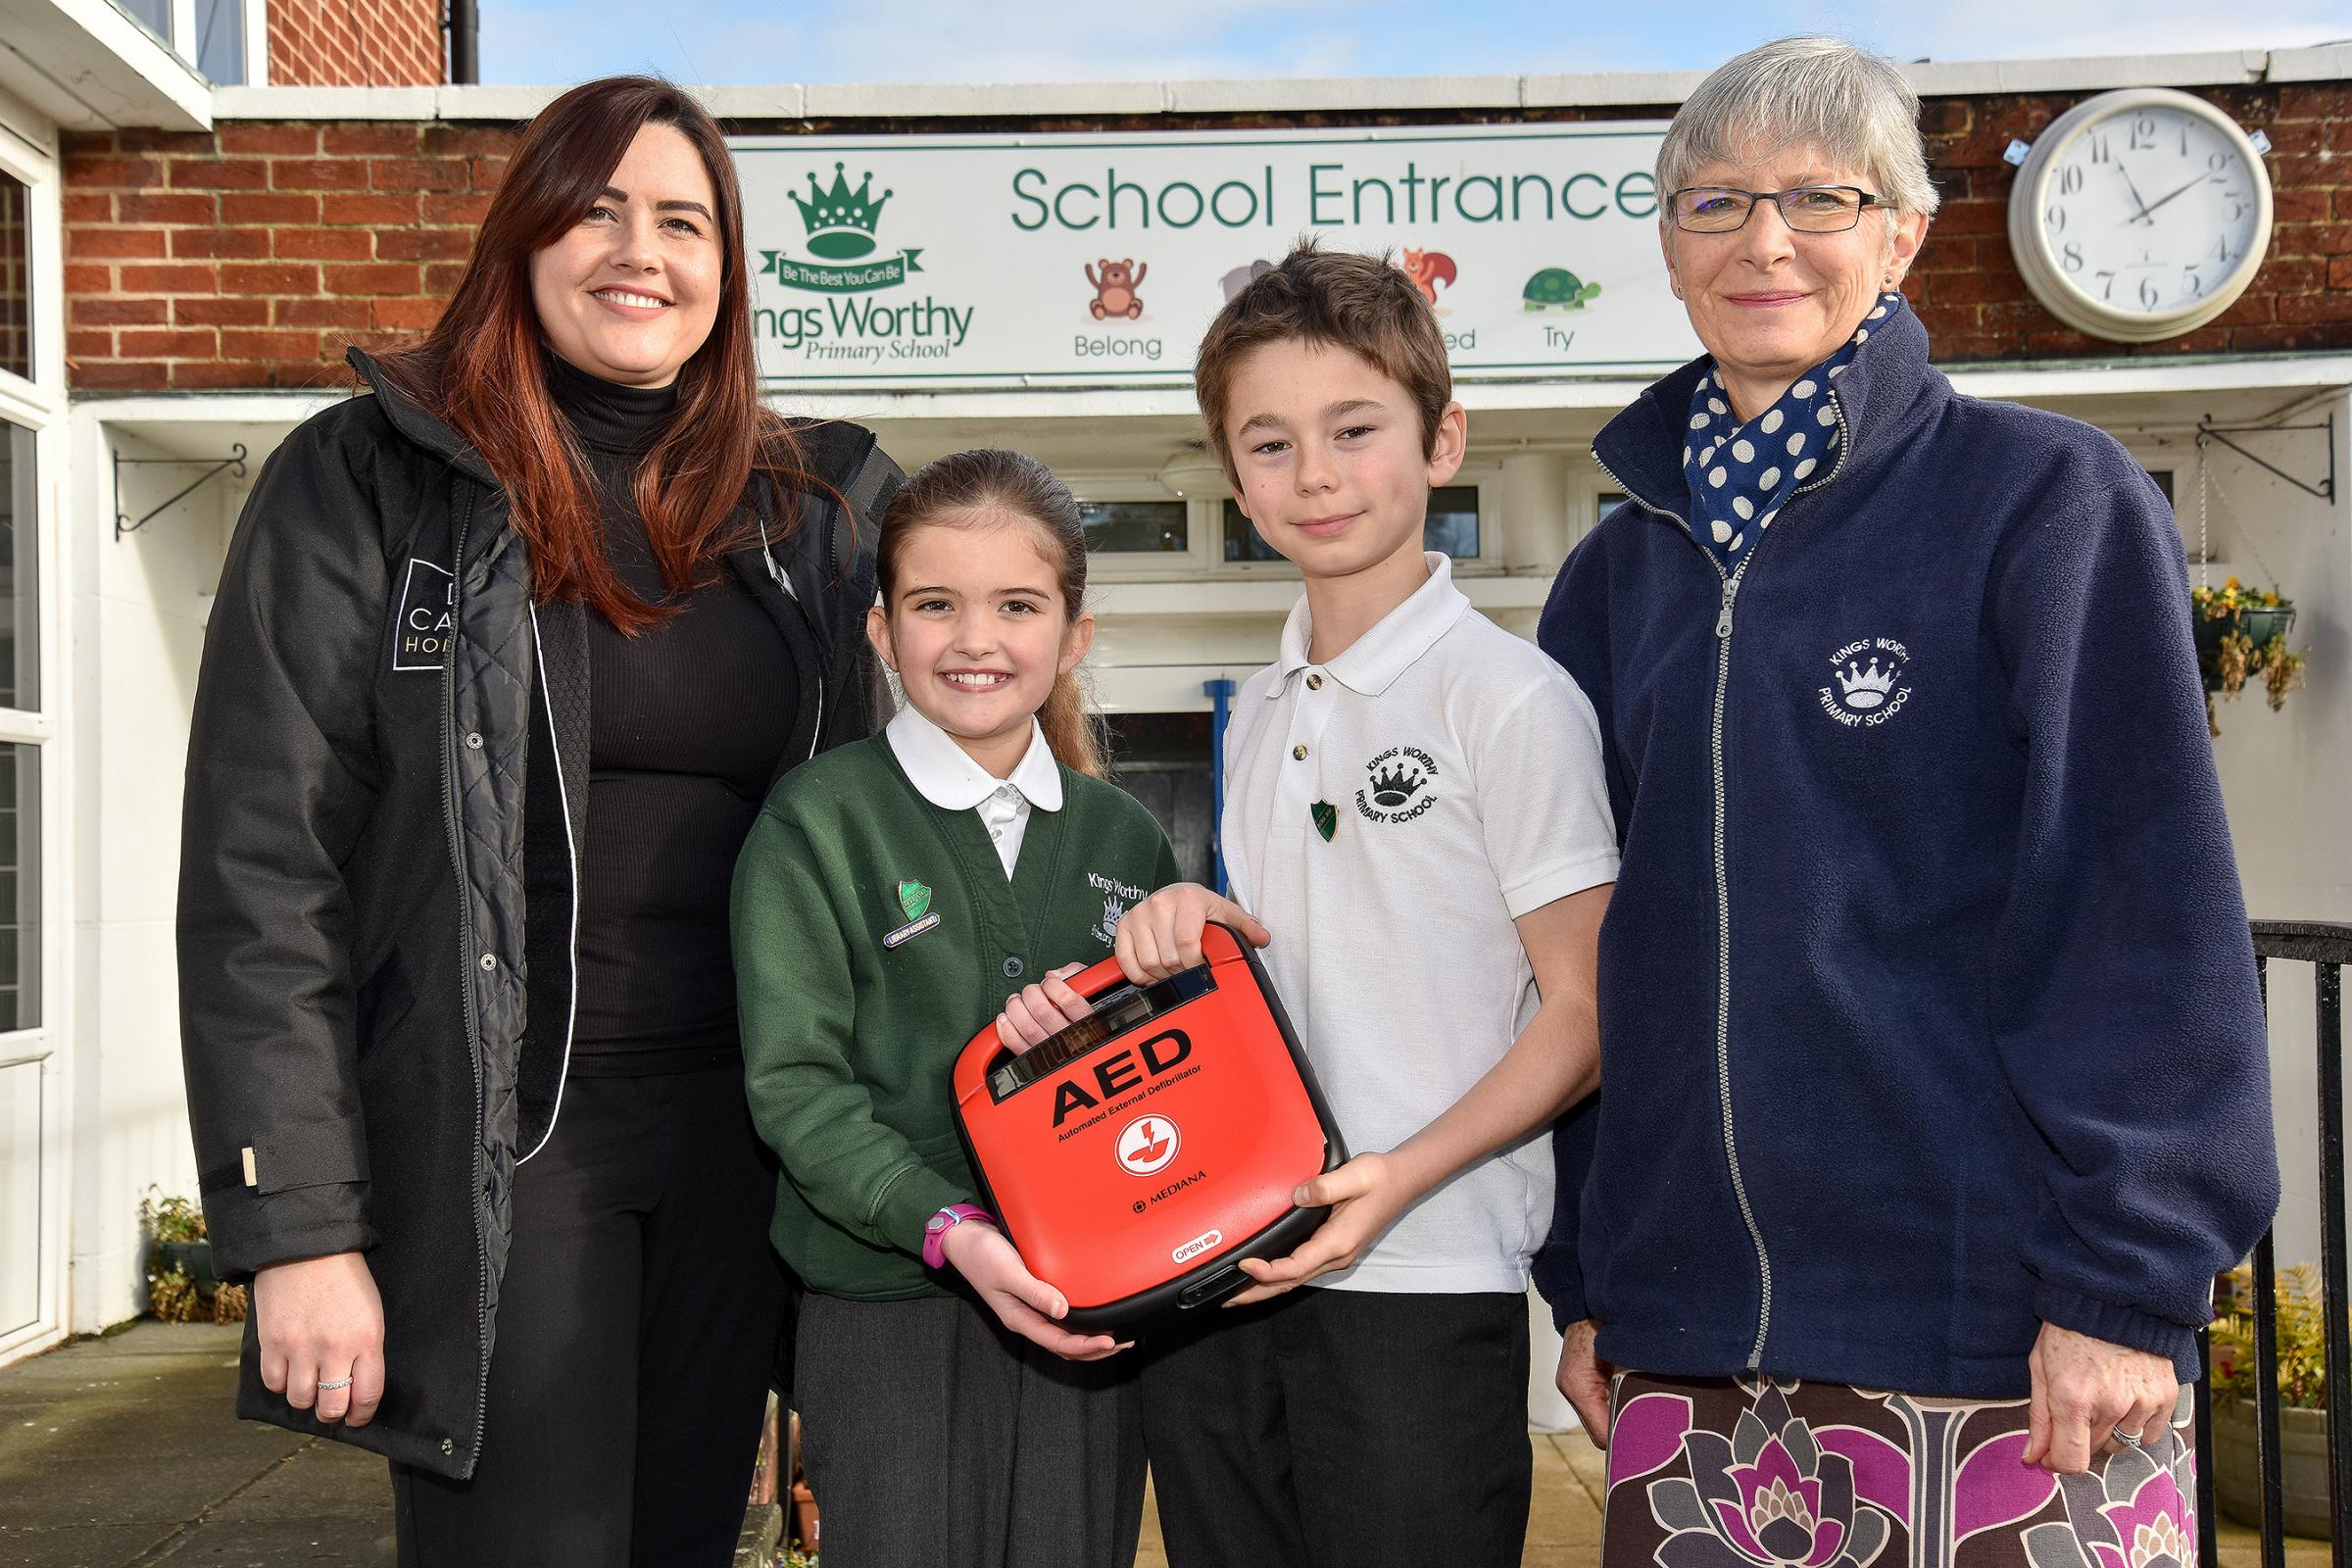 Kings Worthy Primary School, Winchester. L-R; Maria Aspinal (CALA Homes), Erin aged 11, Isaac aged 10, Mrs Paul (Business Manager Kingsworthy Primary School).